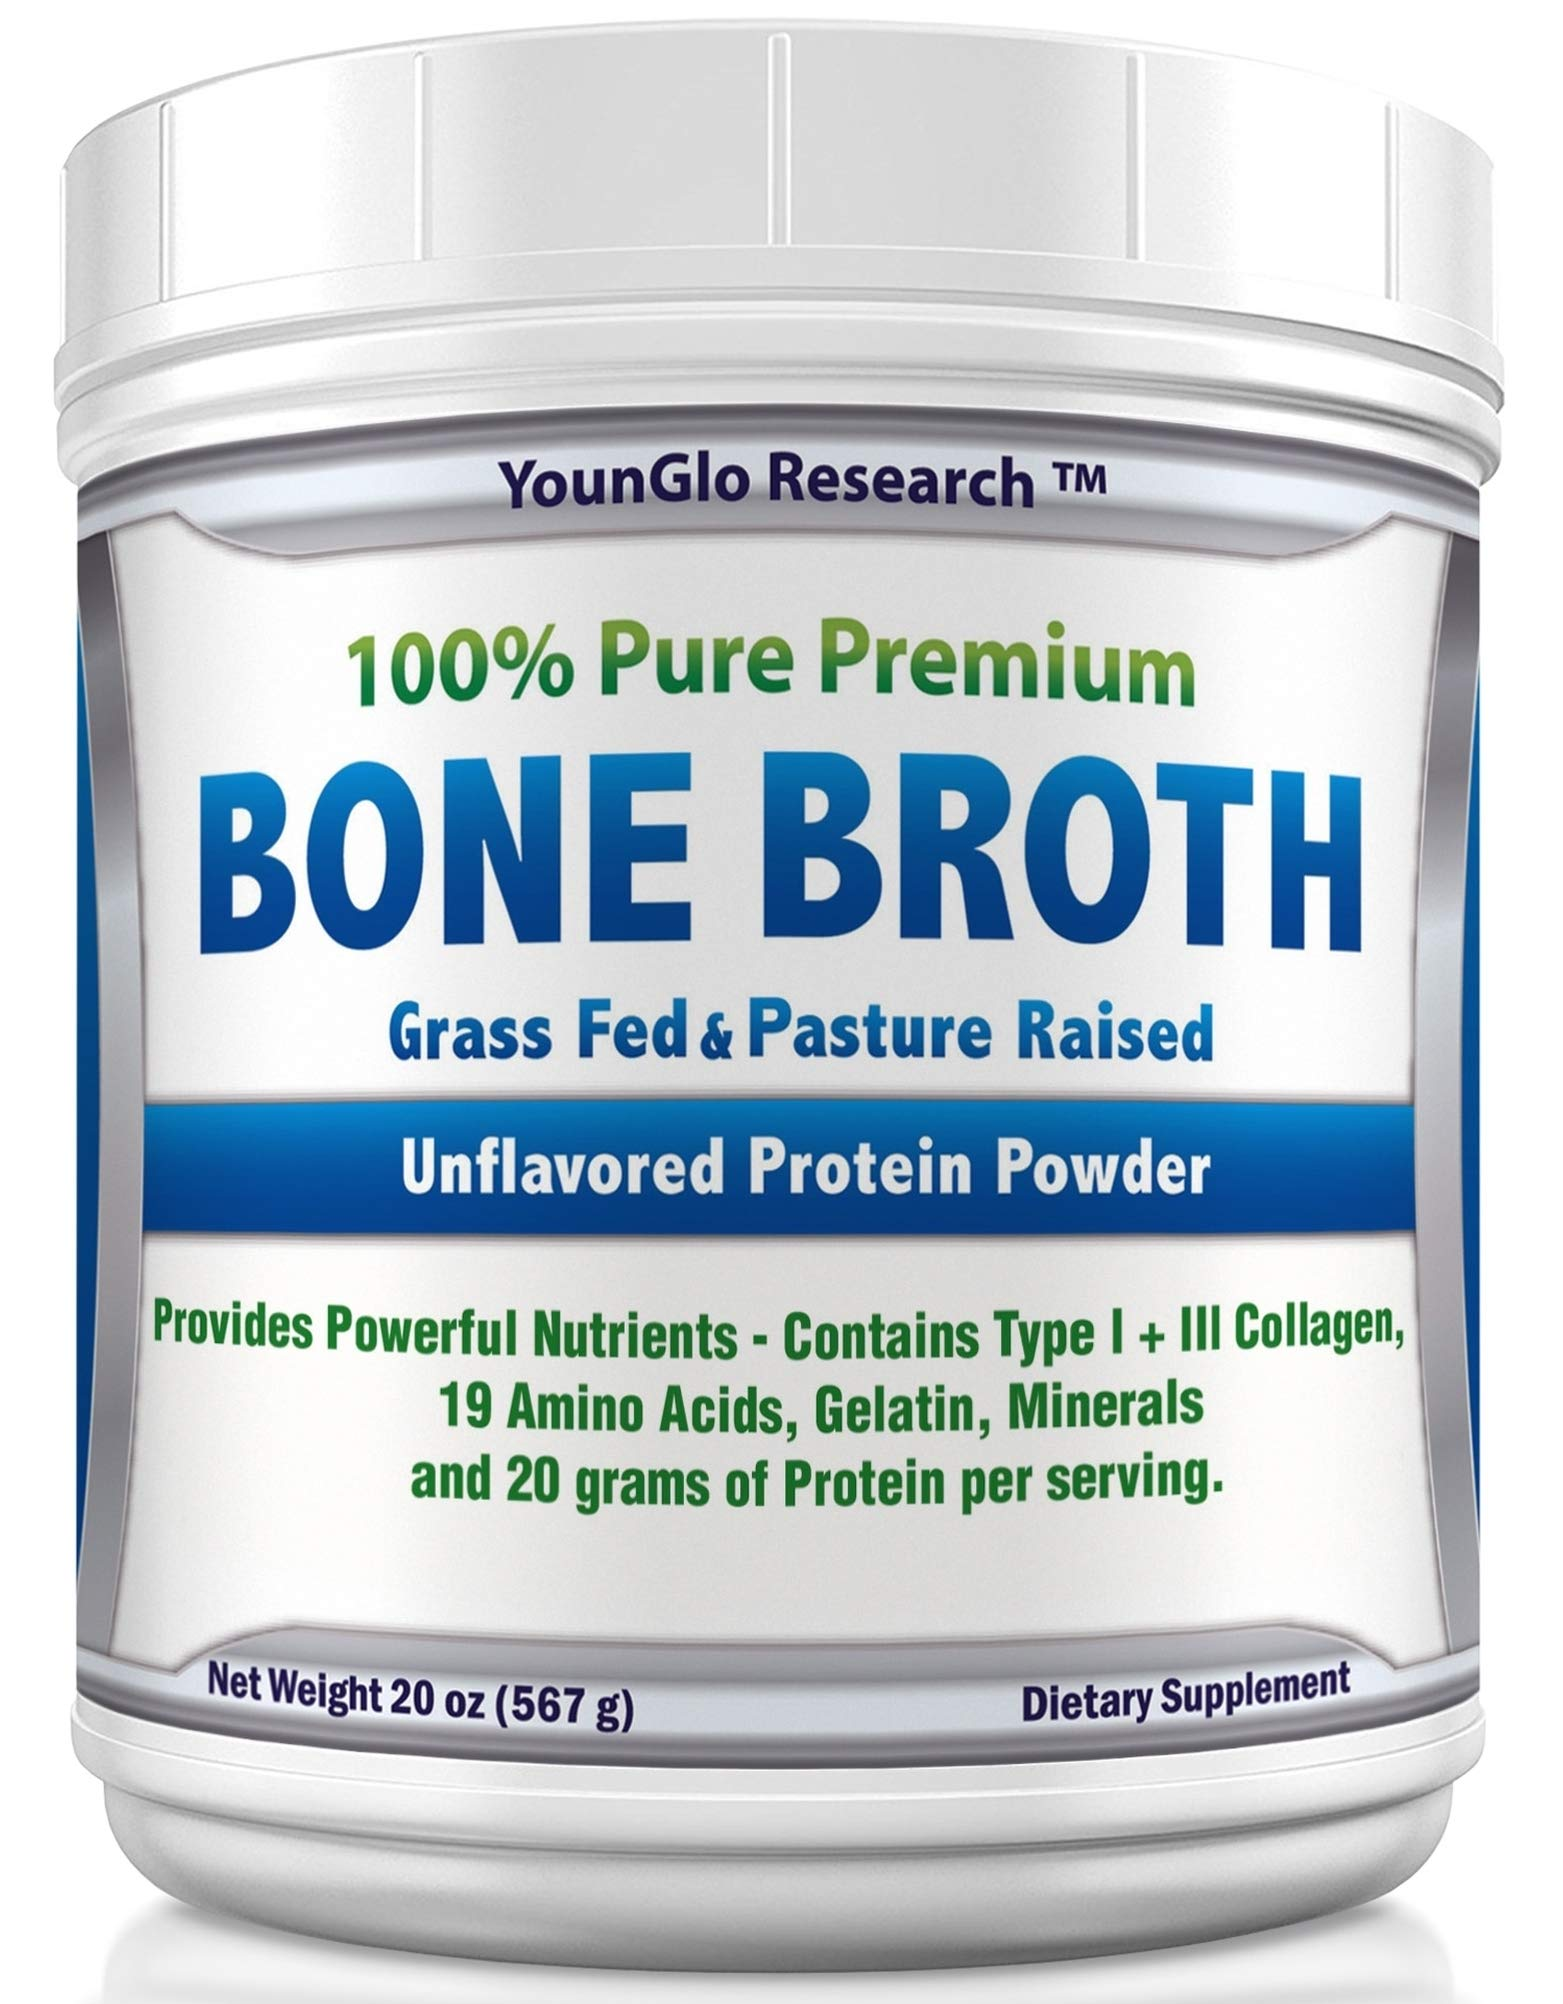 Bone Broth Protein Powder from Grass Fed Beef - 20oz - High in Collagen and Gelatin - Paleo and Keto Friendly - Unflavored (1 Pack) by YounGlo Research